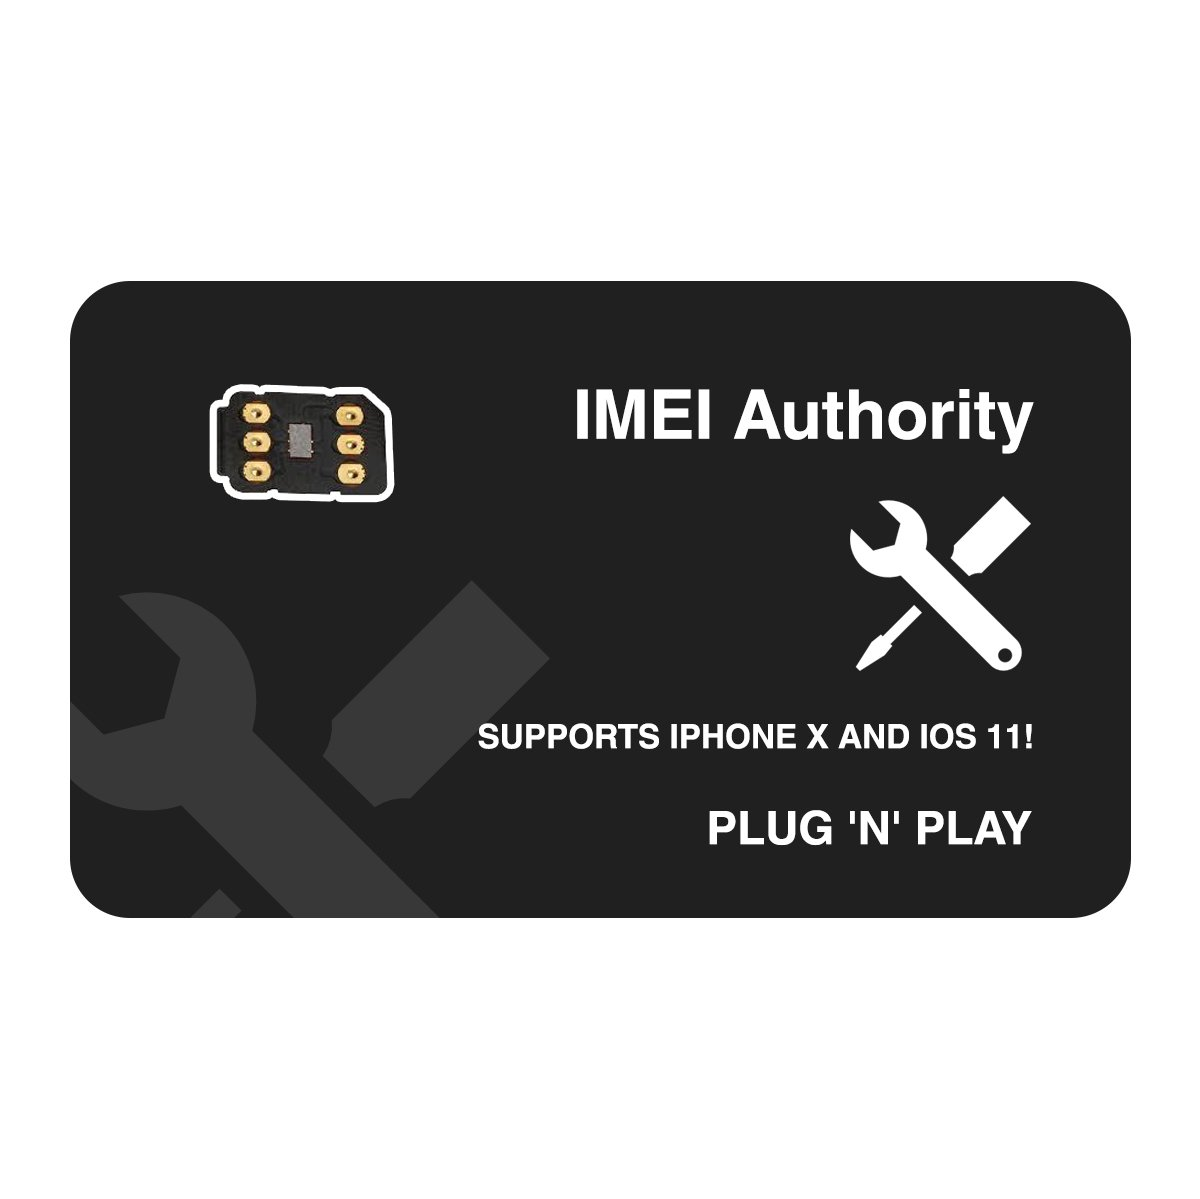 IA Sim Unlock Adapter for iPhone X 8+ 8 7+ 7 6S+ 6S 6 5C 5S - Any Carrier -  AT&T, Verizon, Sprint, T-Mobile, XFINITY, GSM or CDMA GPP TURBO GEVEY AIR